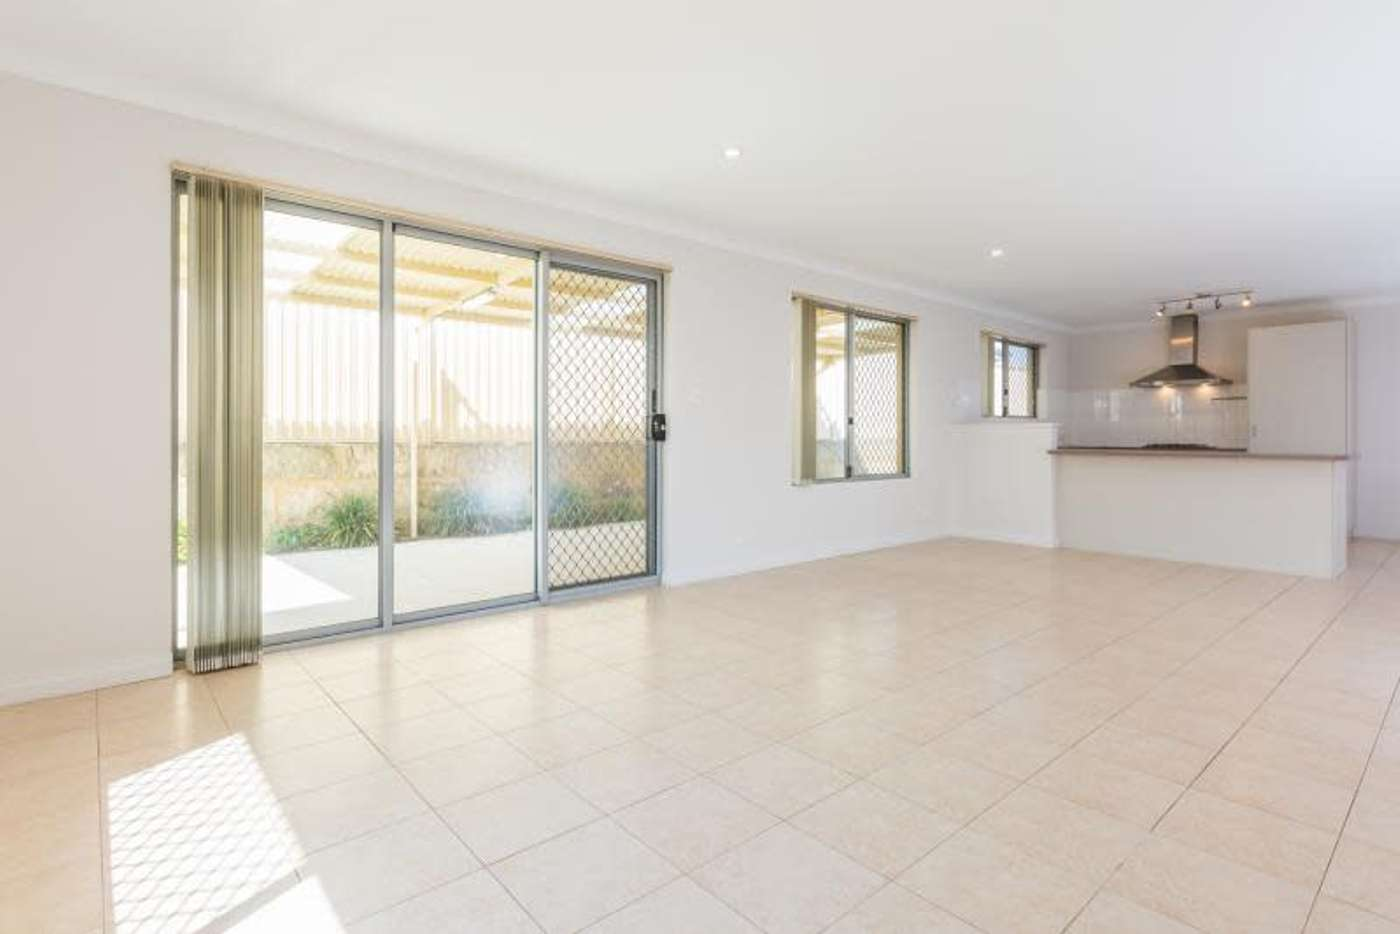 Sixth view of Homely house listing, 86a Garling Street, Willagee WA 6156